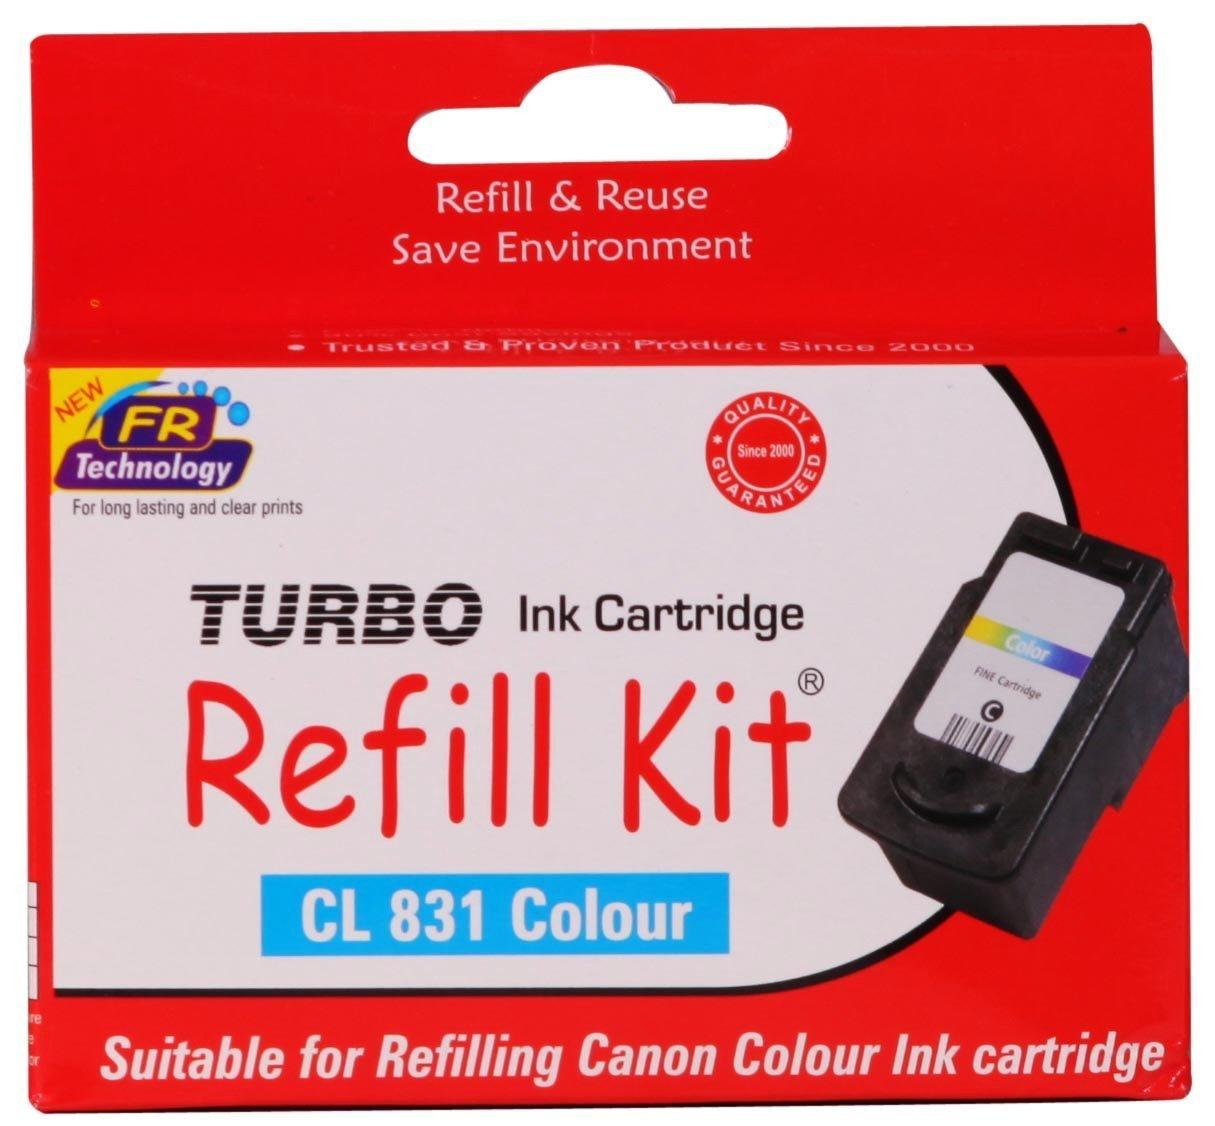 Turbo Refill Kit For Canon 831 Colour Ink Cartridge Price In India Tinta Cl 811 Original 100 Coupons And Specifications Amex